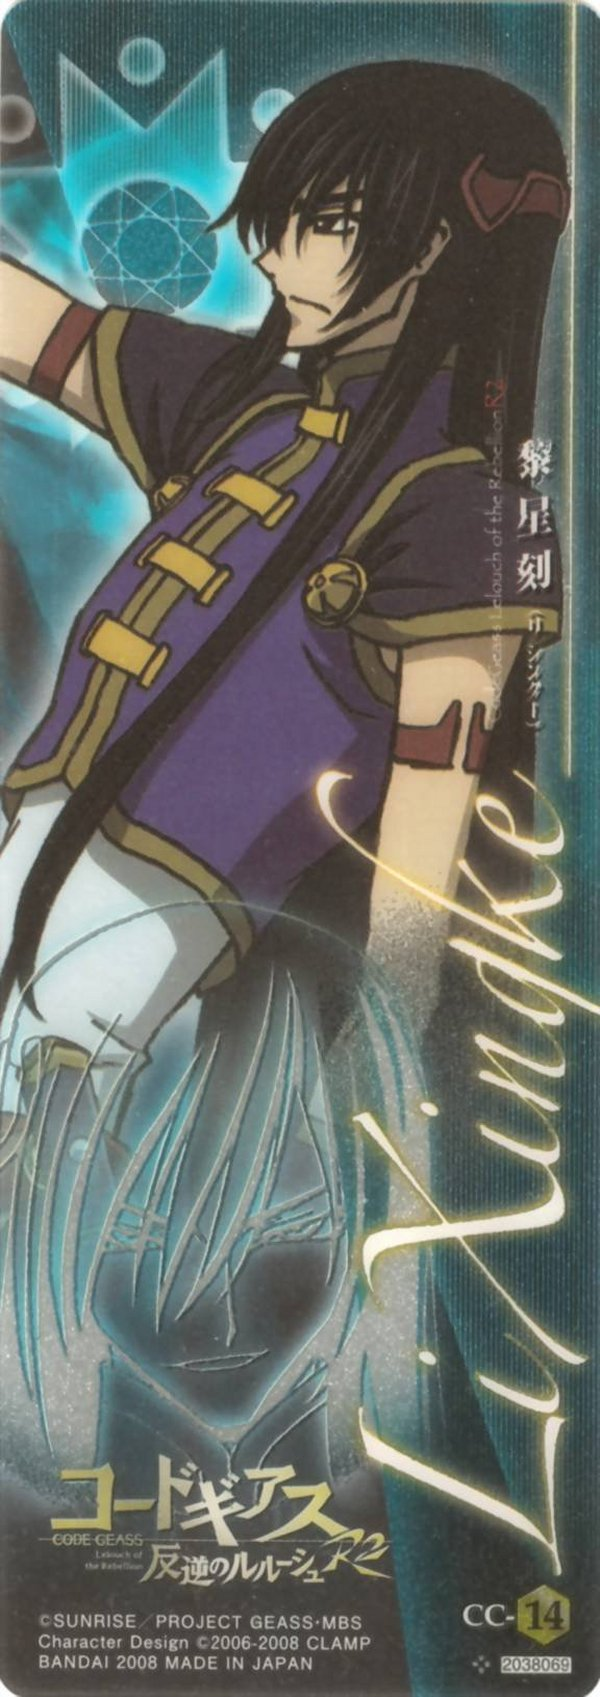 Tags: Anime, CODE GEASS: Hangyaku no Lelouch, Li Xingke, Scan, Official Art